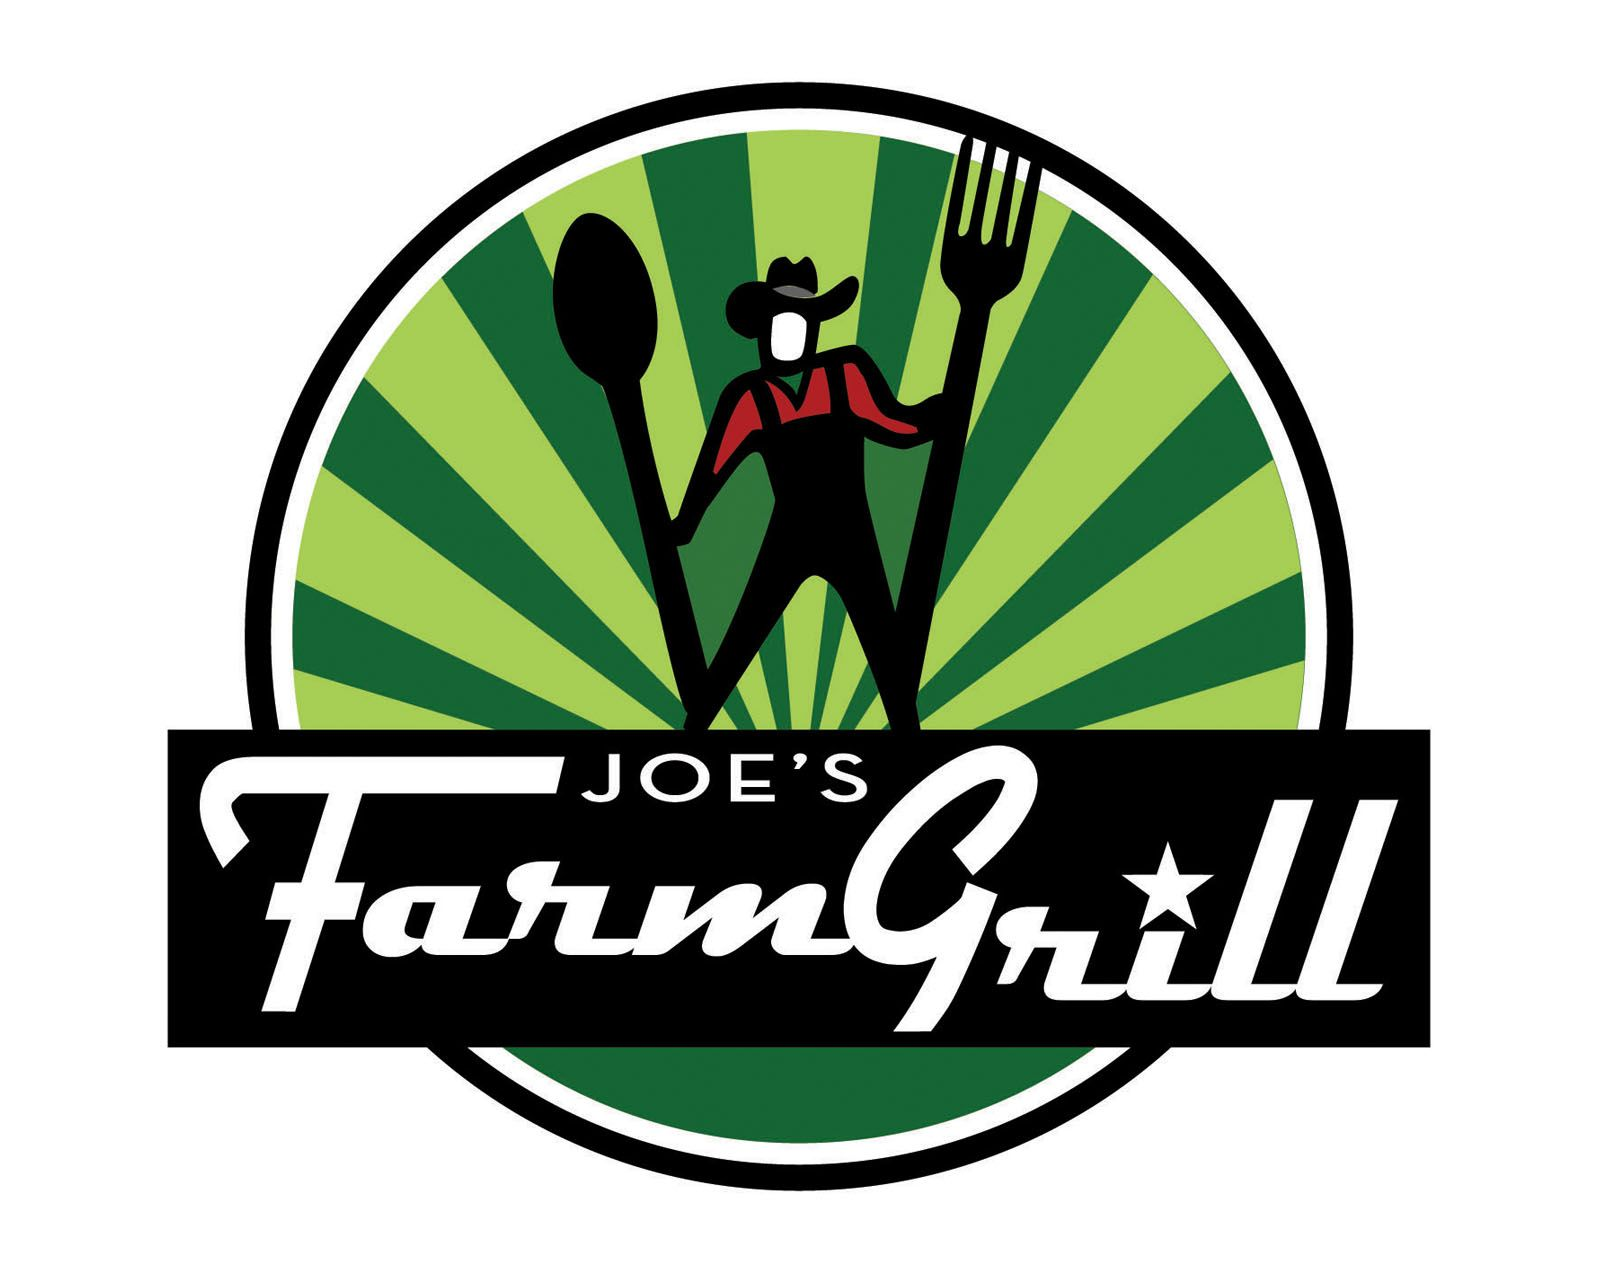 The Farmhouse Restaurant Gilbert Joe S Farm Grill Gilbert Az Logo Designed By Jeff Moss Moss